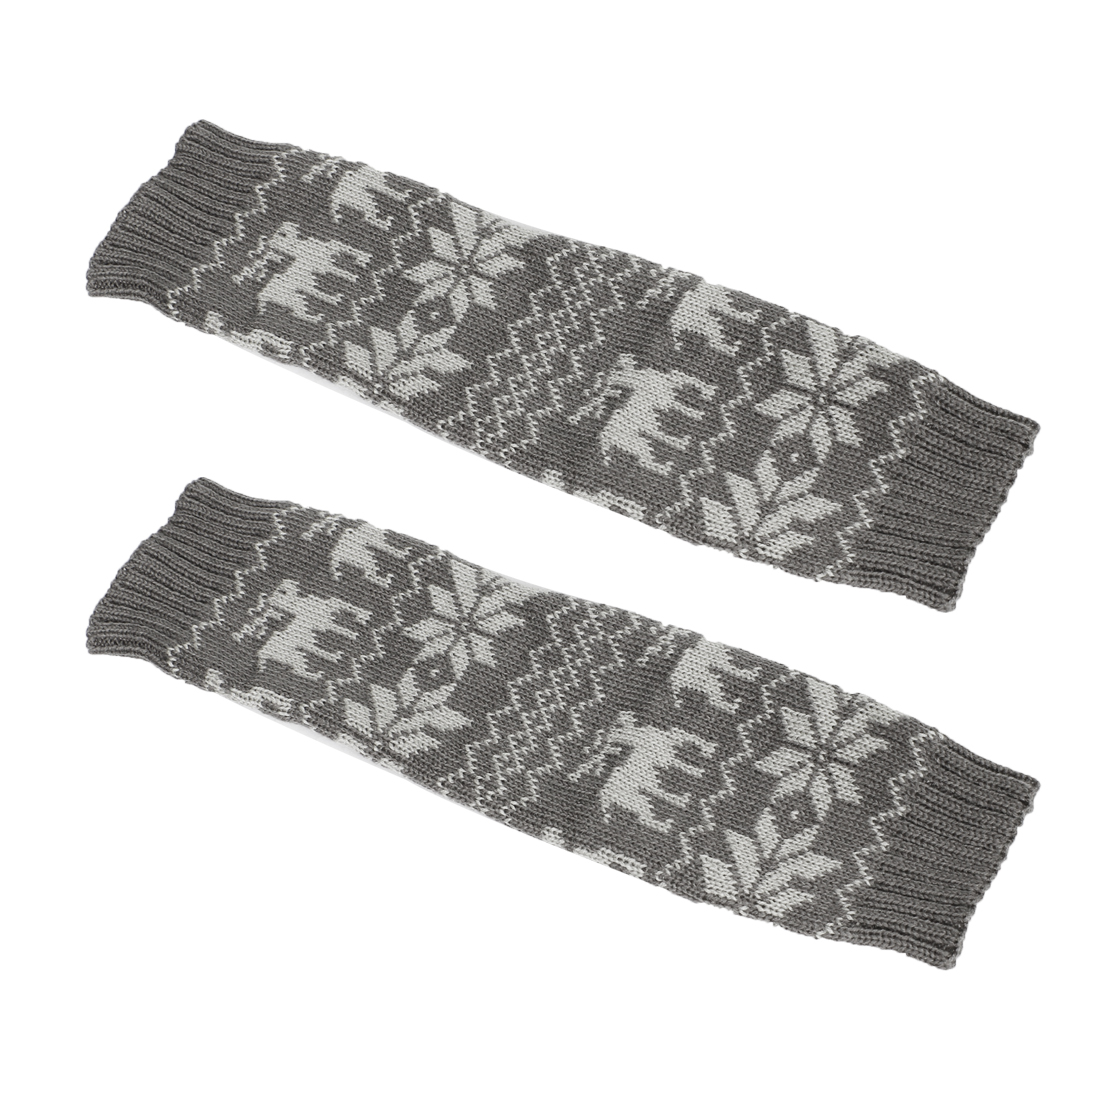 Pair Dark Gray Nordic Pattern Stretchy Toeless Knee High Leg Warmer Socks for Lady